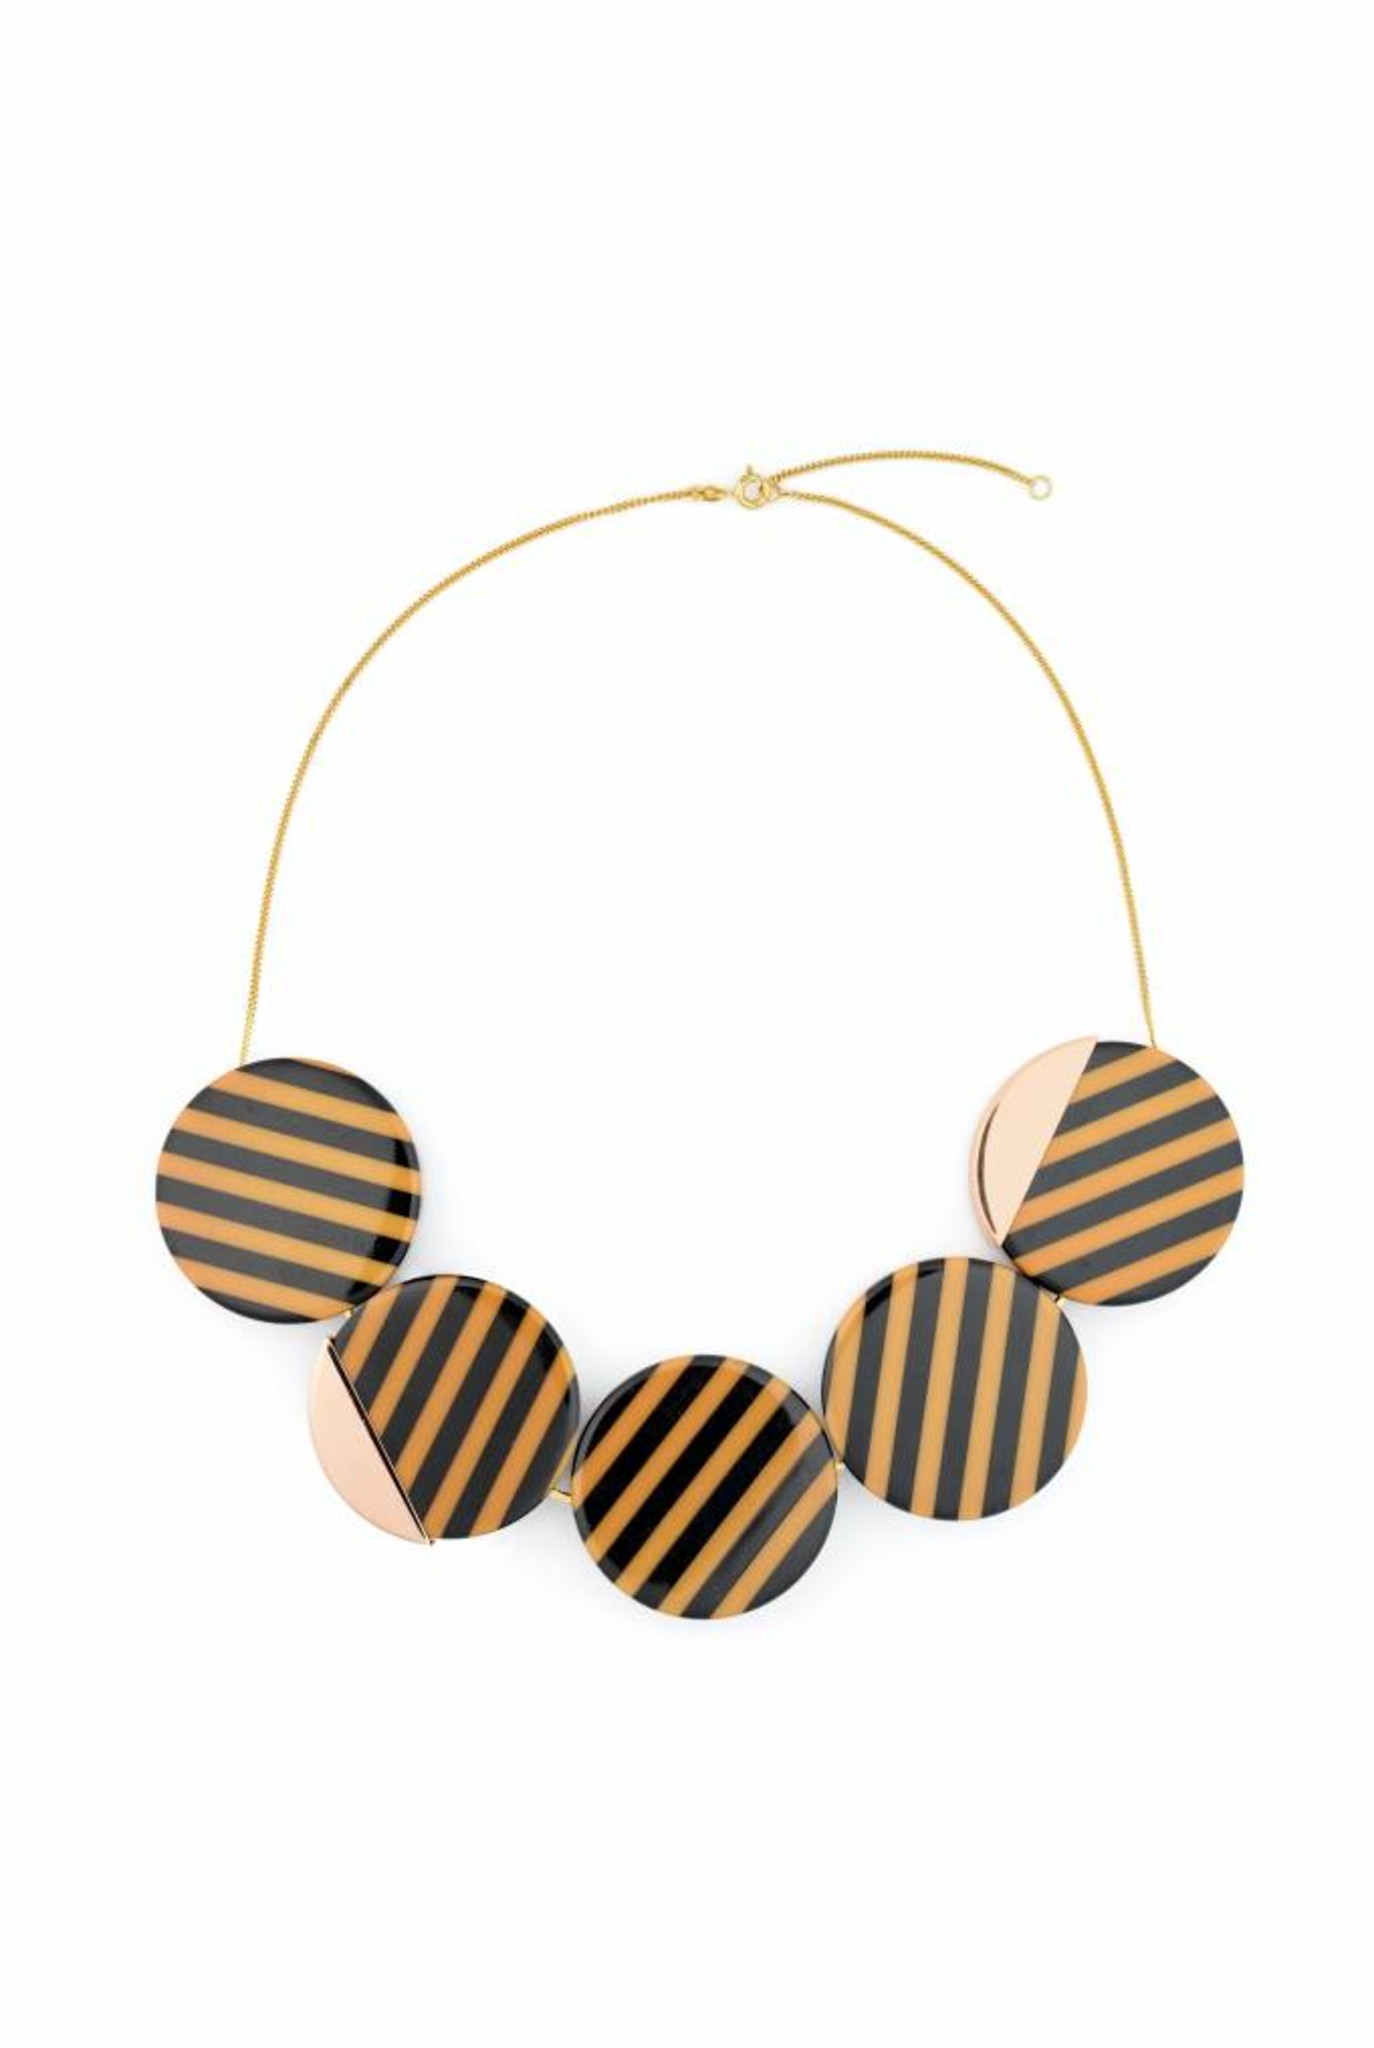 black and mocca striped short statement necklace